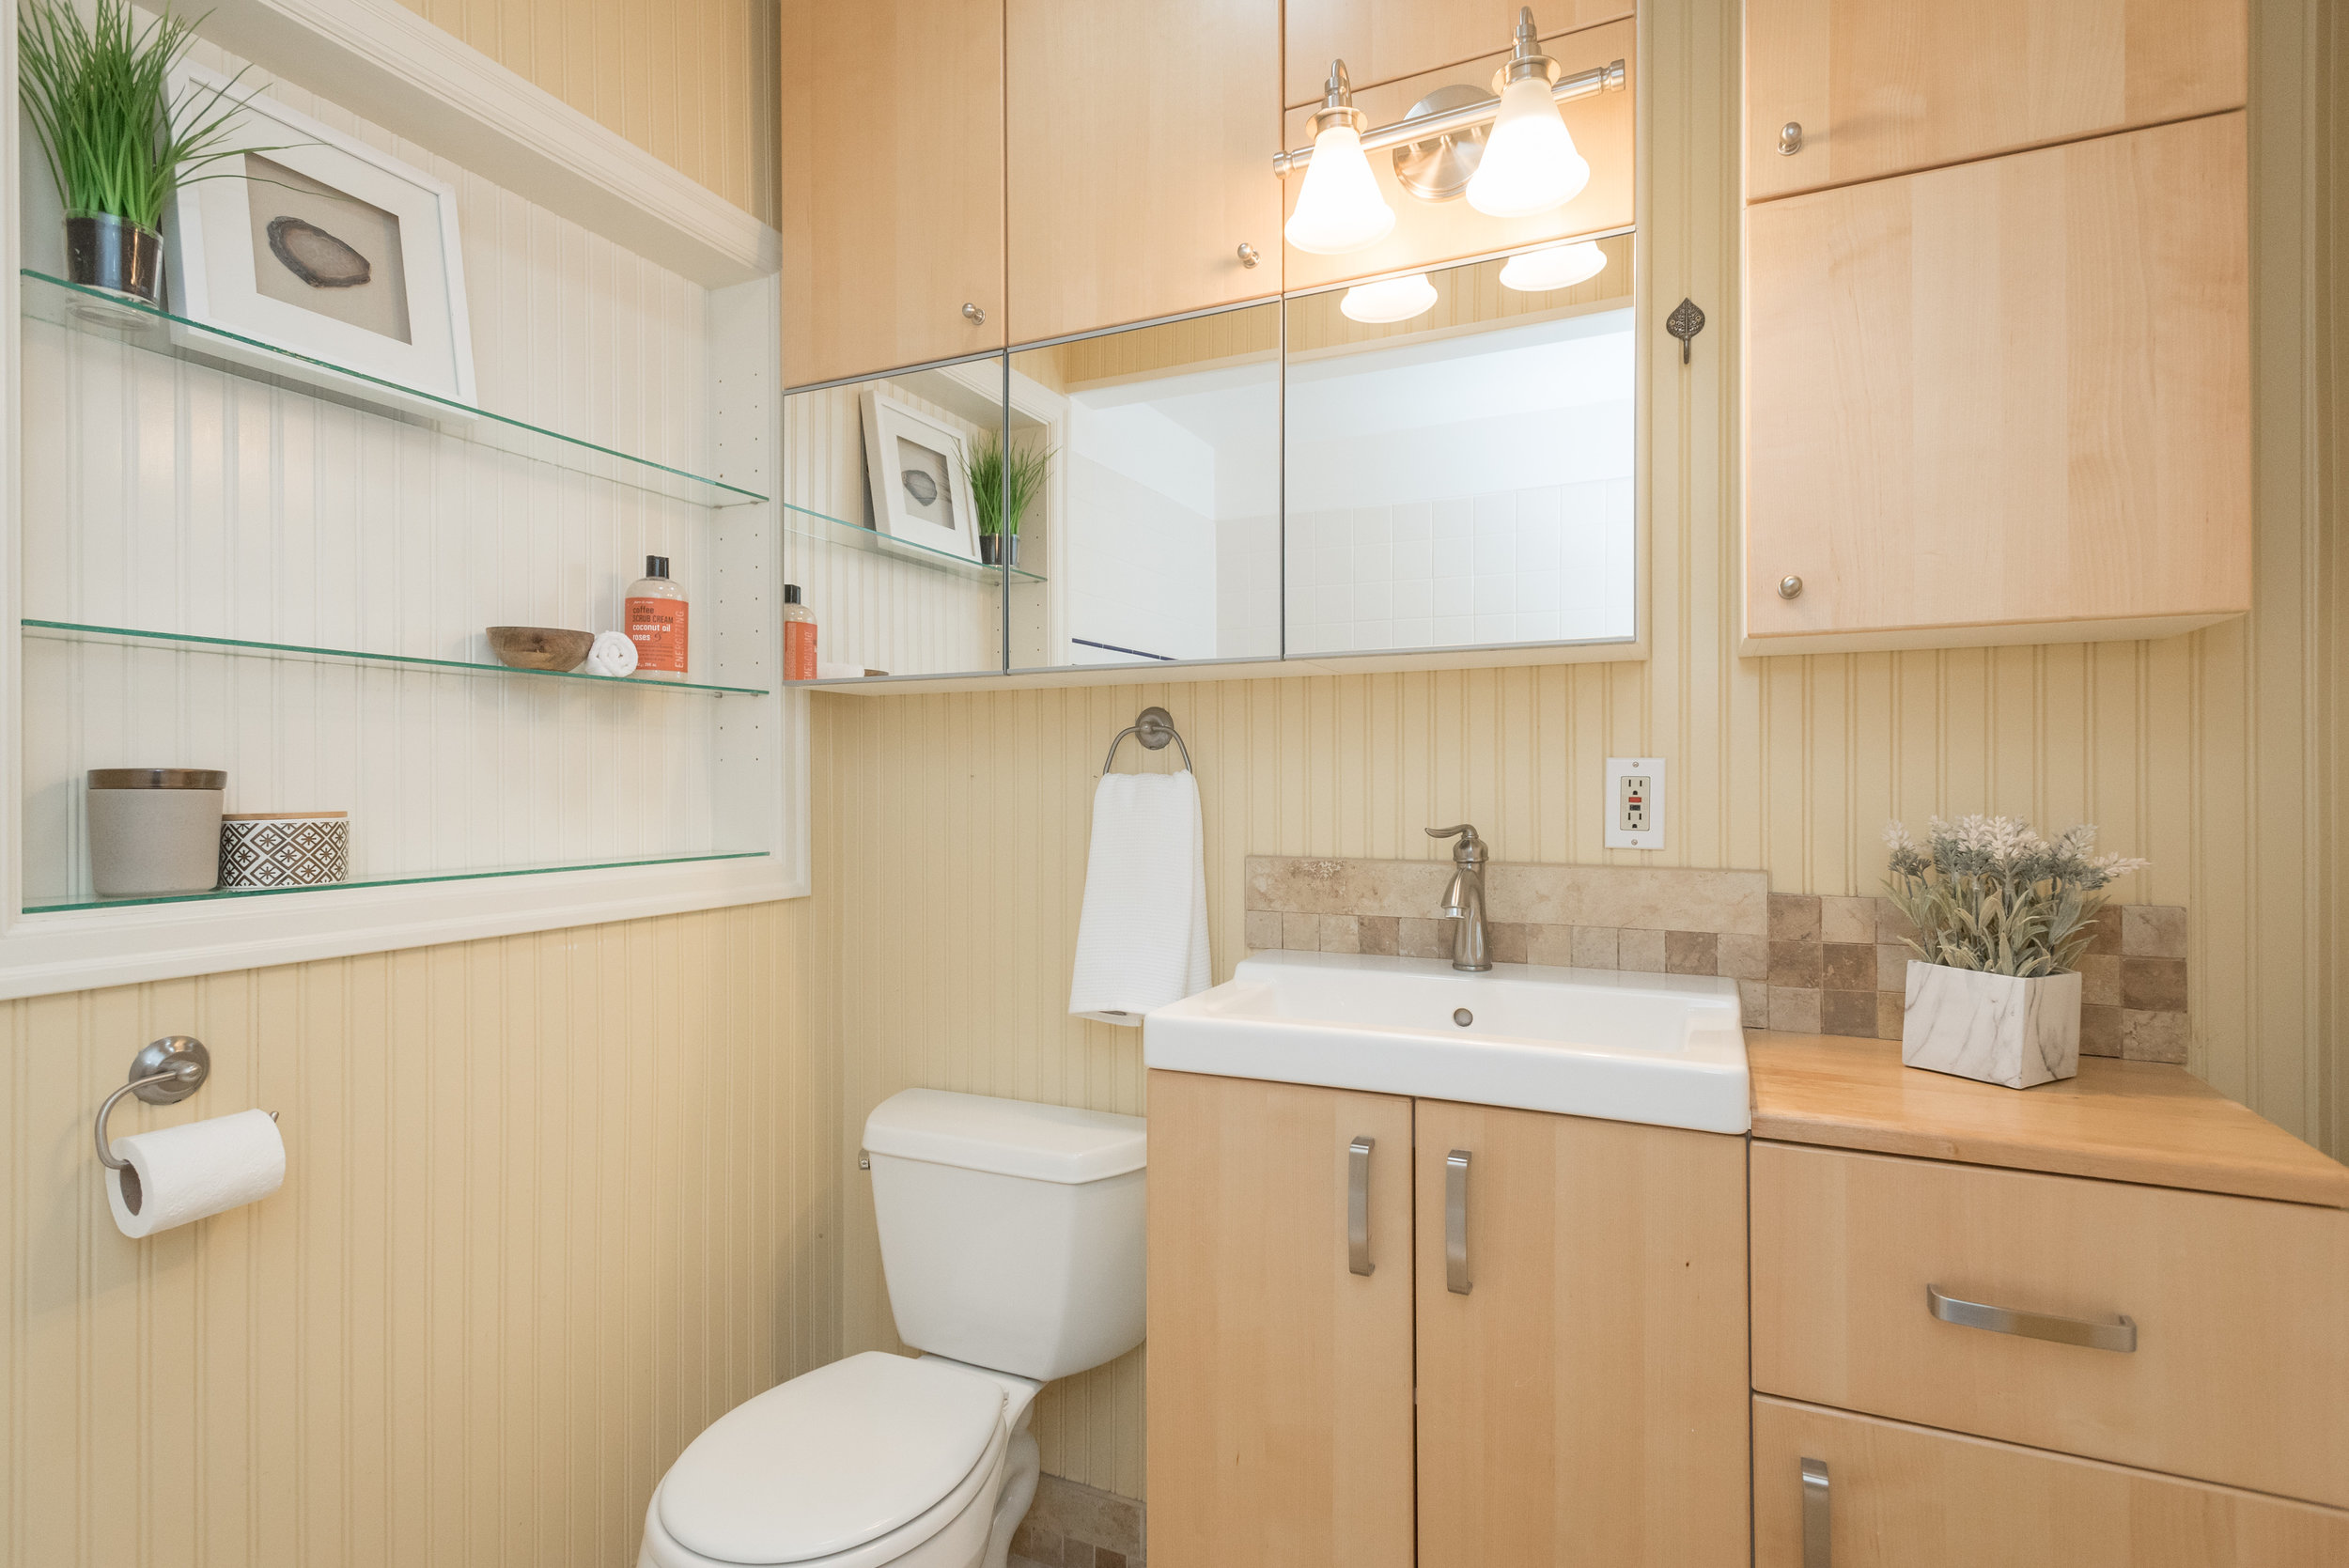 Storage is another factor to consider, and the lighting is great in this bathroom.